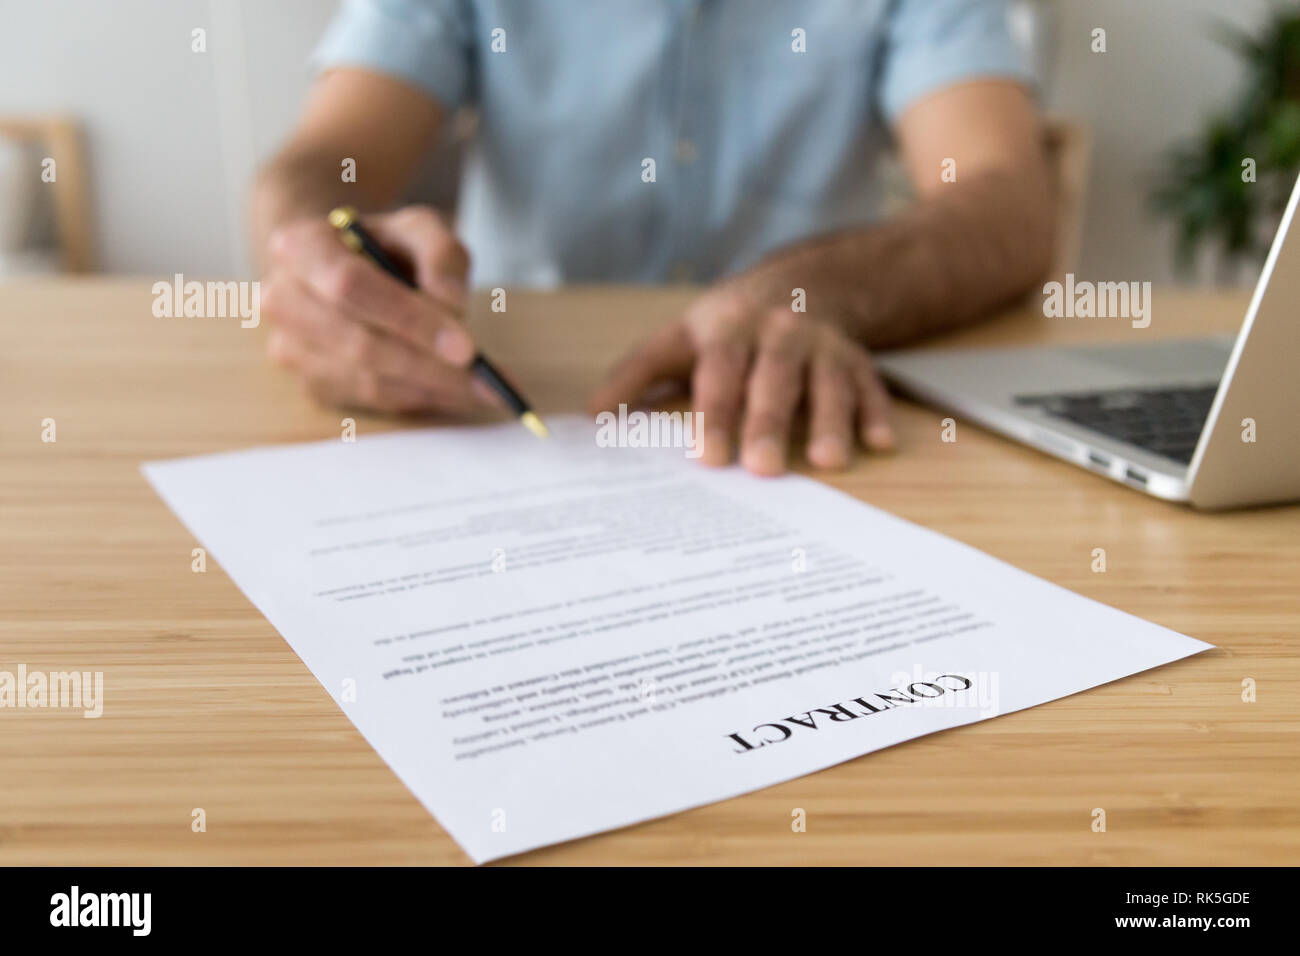 Male hand signing paper contract concept, close up view - Stock Image